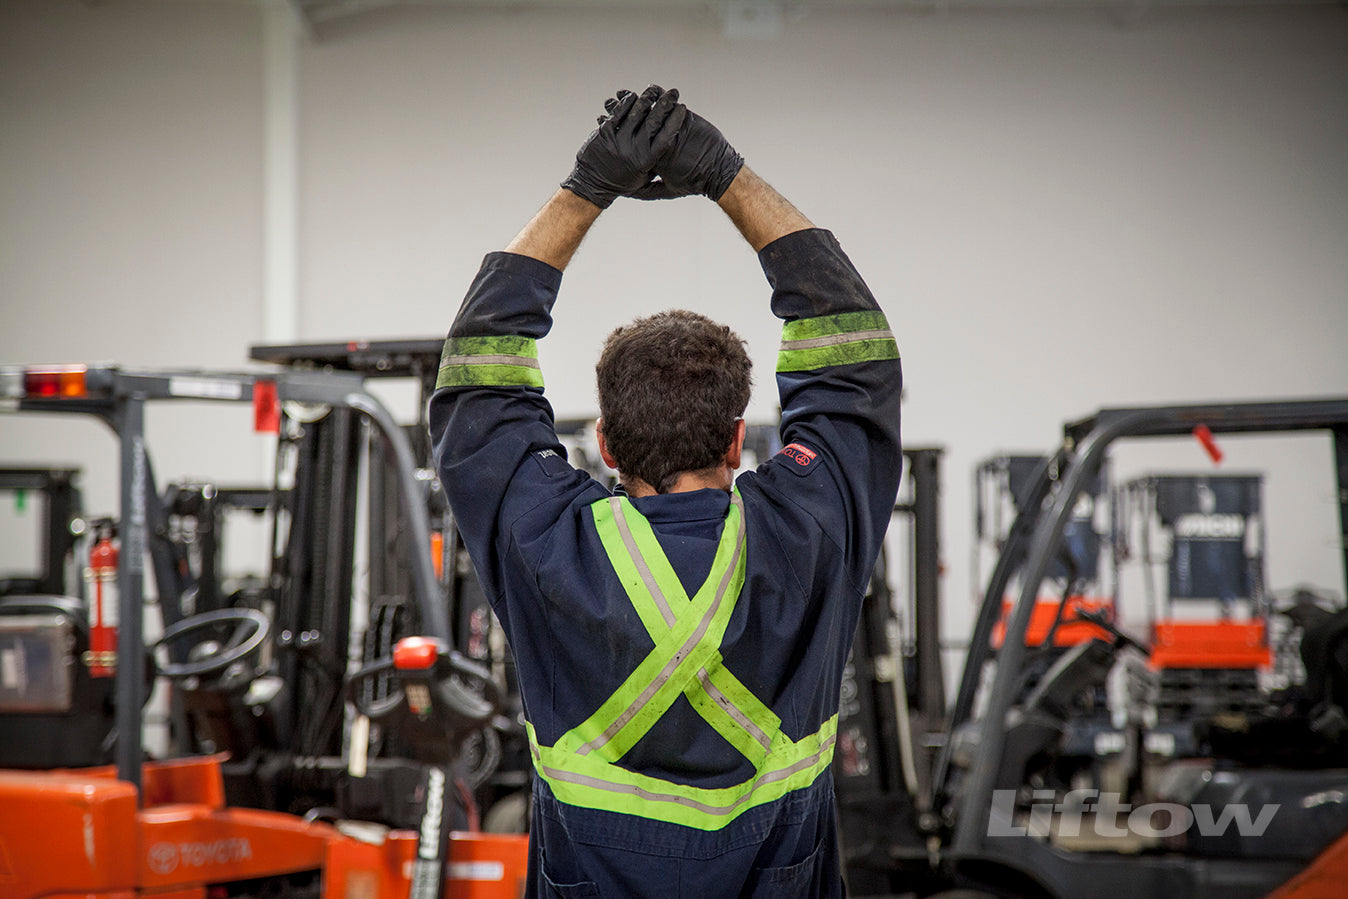 Stretching, Moving and Employee Safety